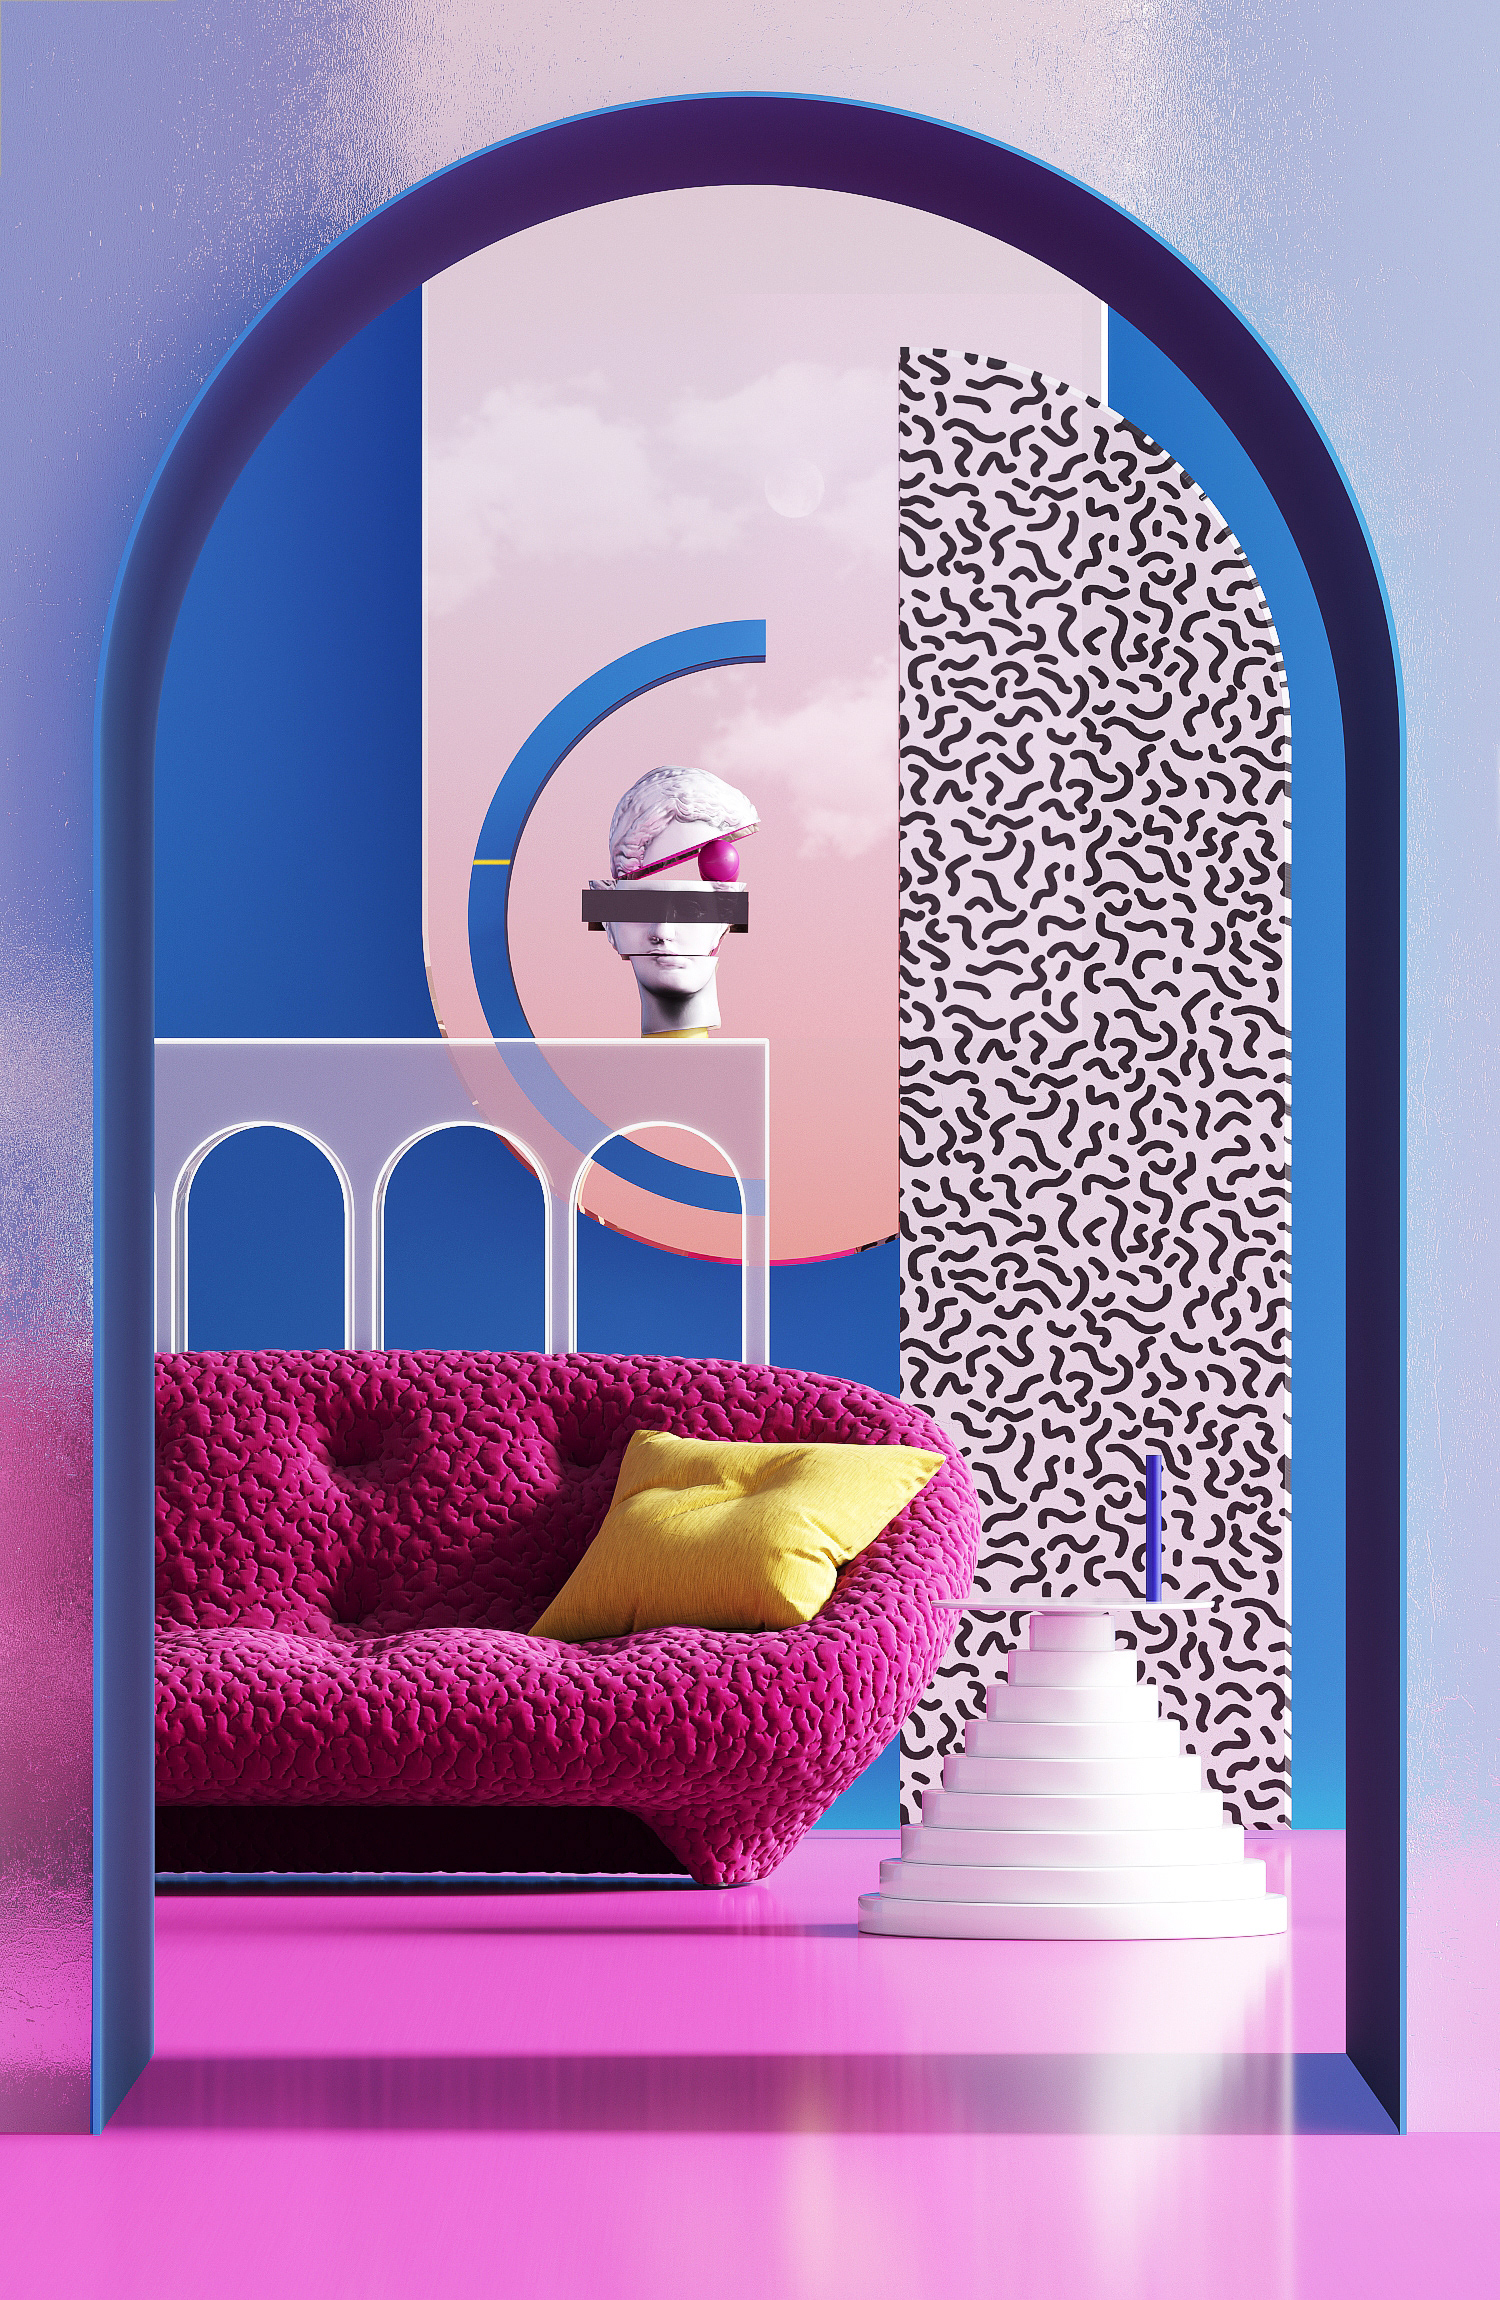 Interior Design and Digital Art and Illustration